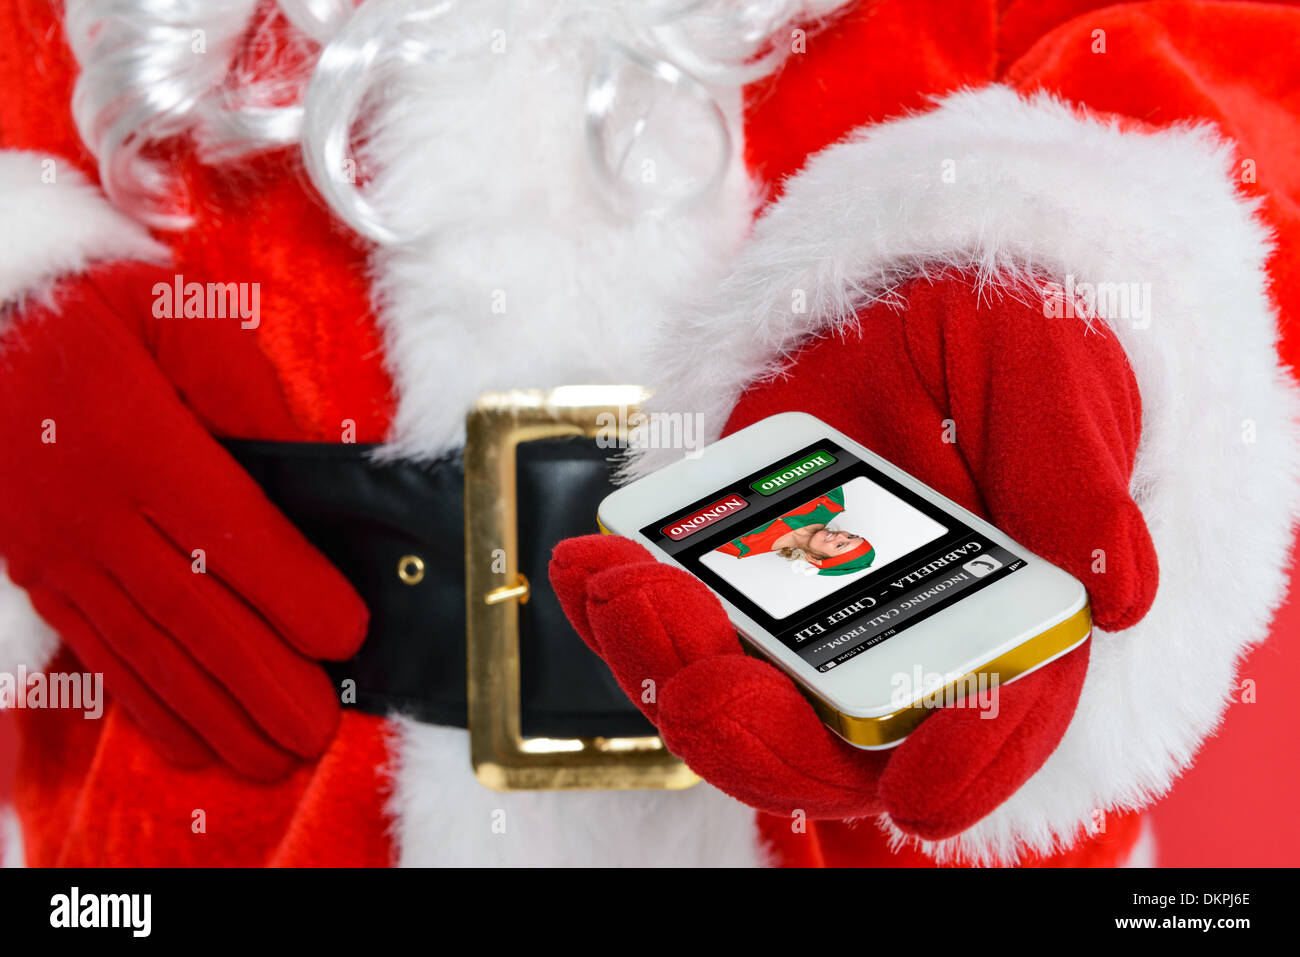 Santa Claus or Father Christmas getting a phone call from his Chief Elf on Christmas Eve. - Stock Image